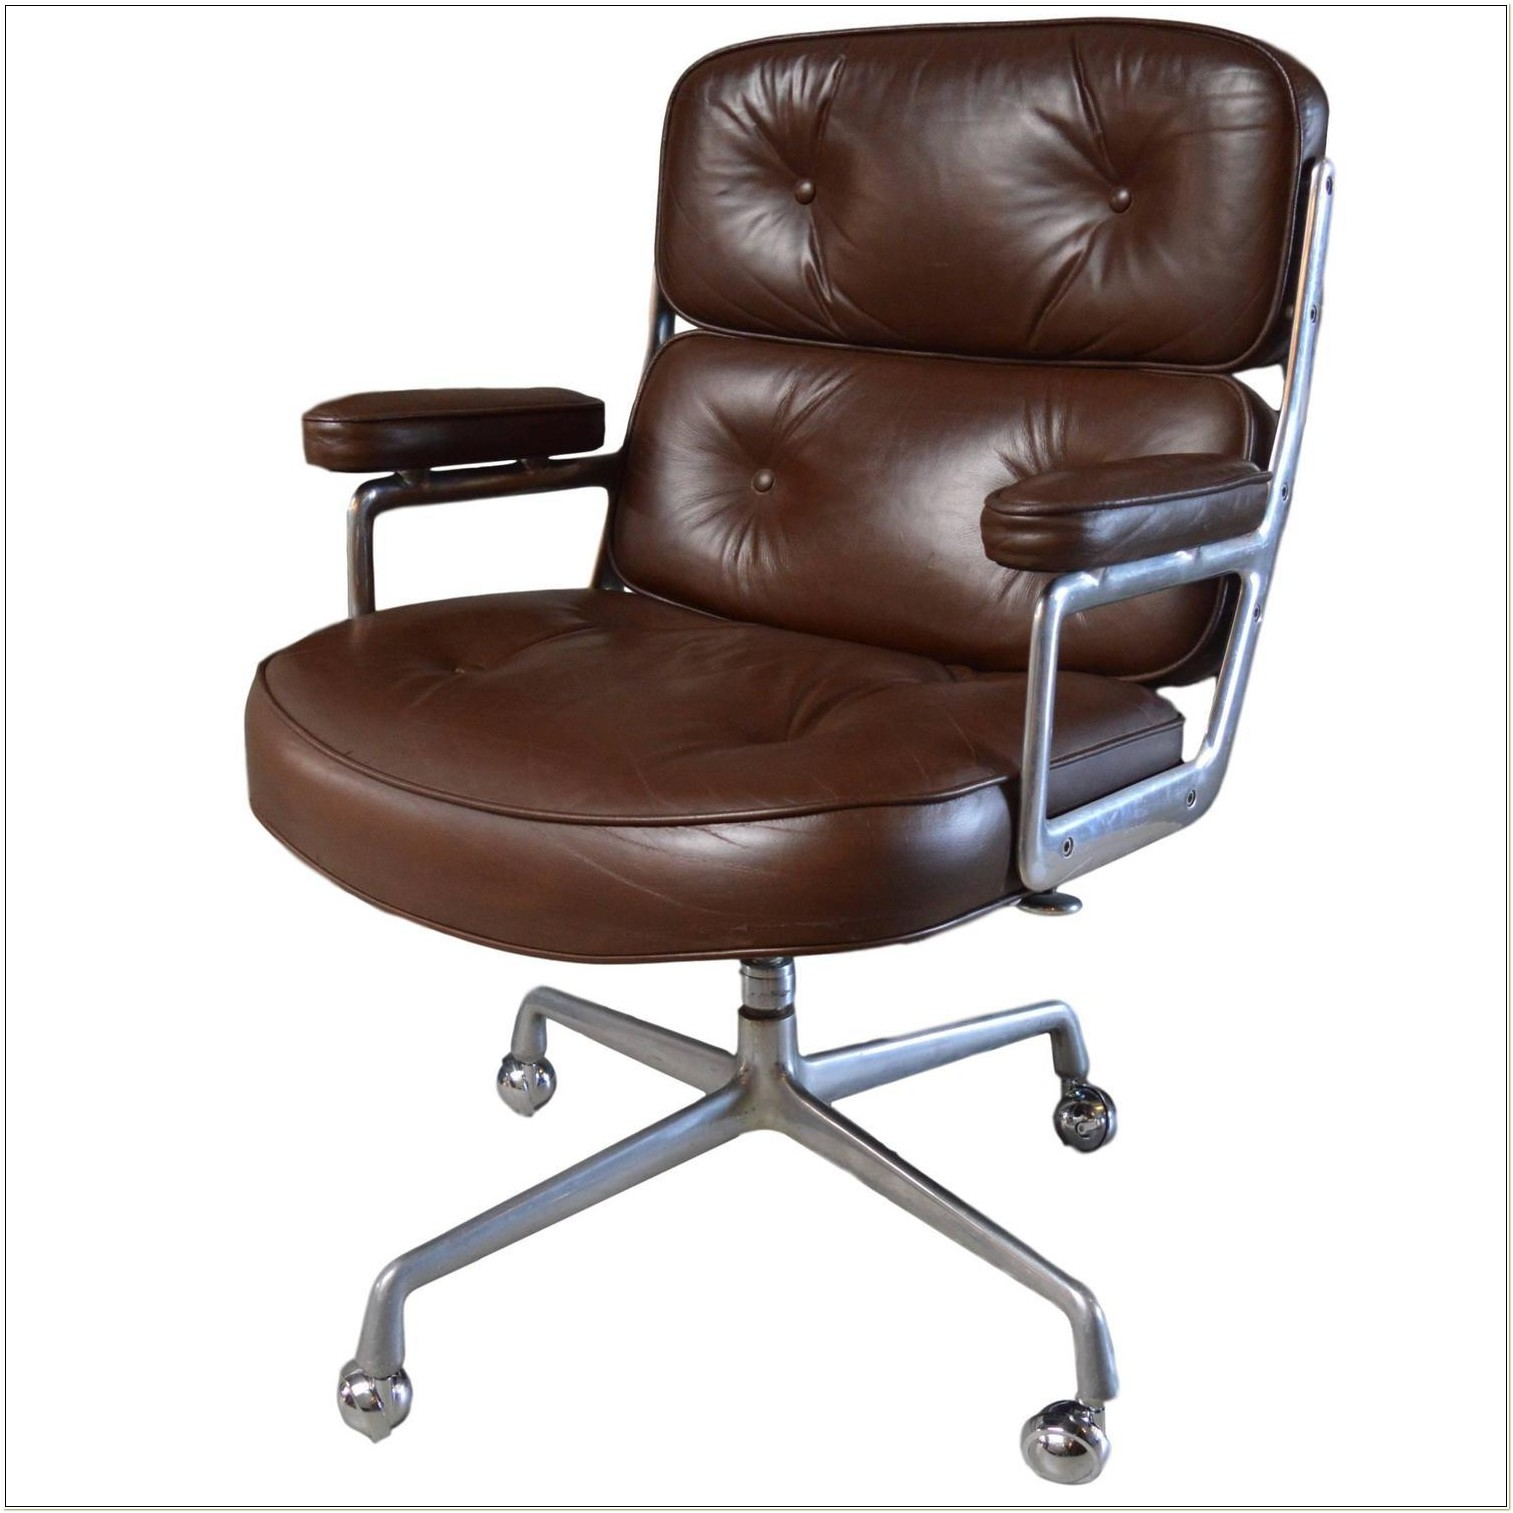 Eames Time Life Chair Dimensions